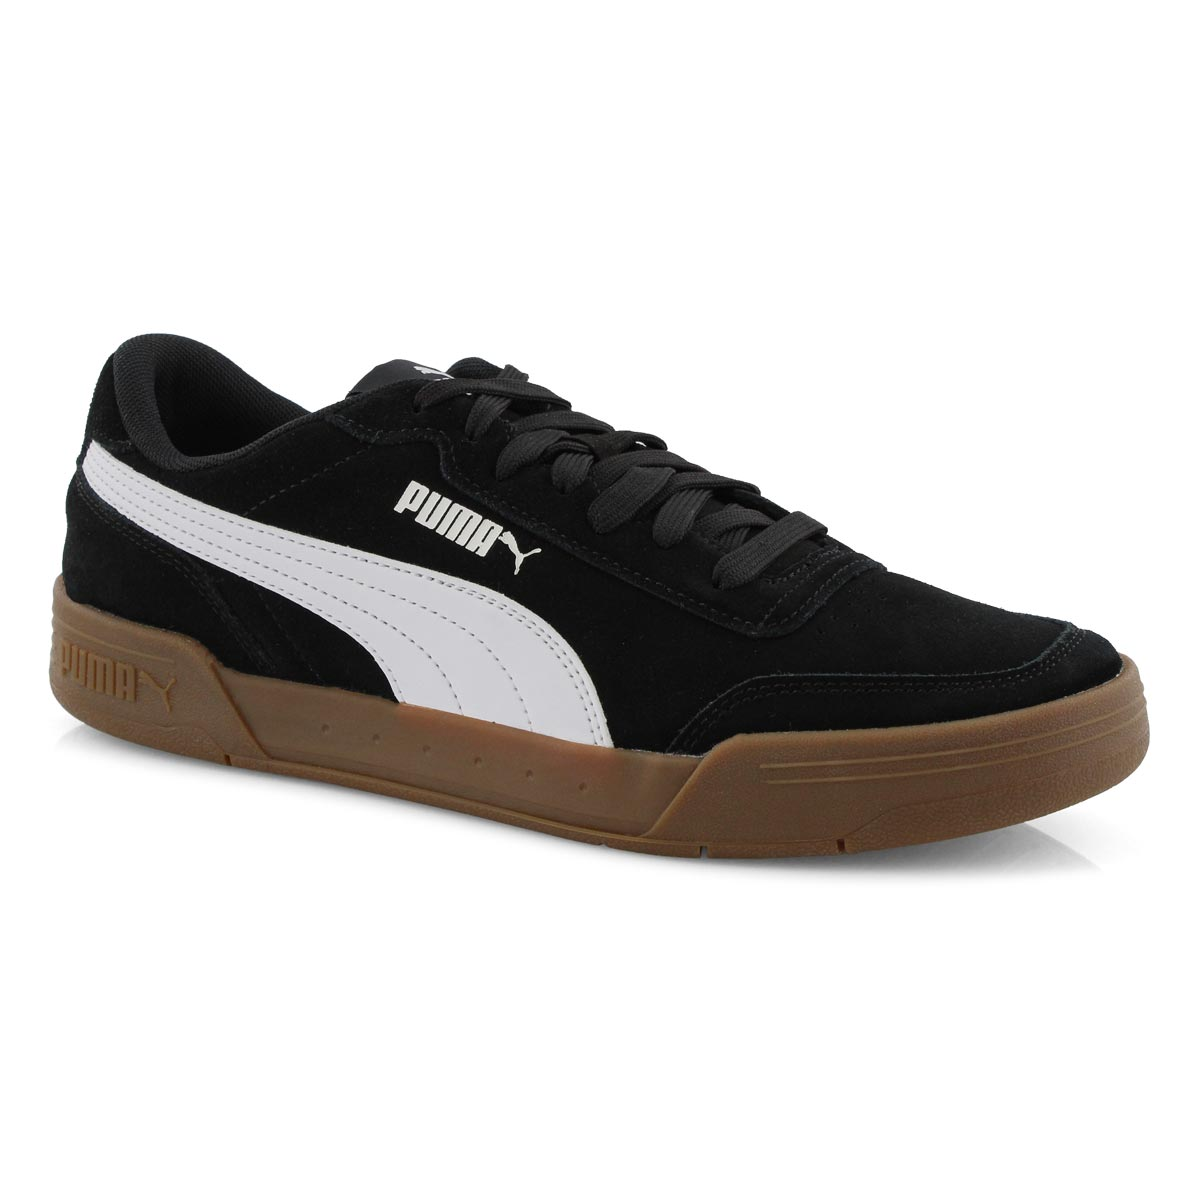 Mns Caracal SD blk/wht lace up sneaker